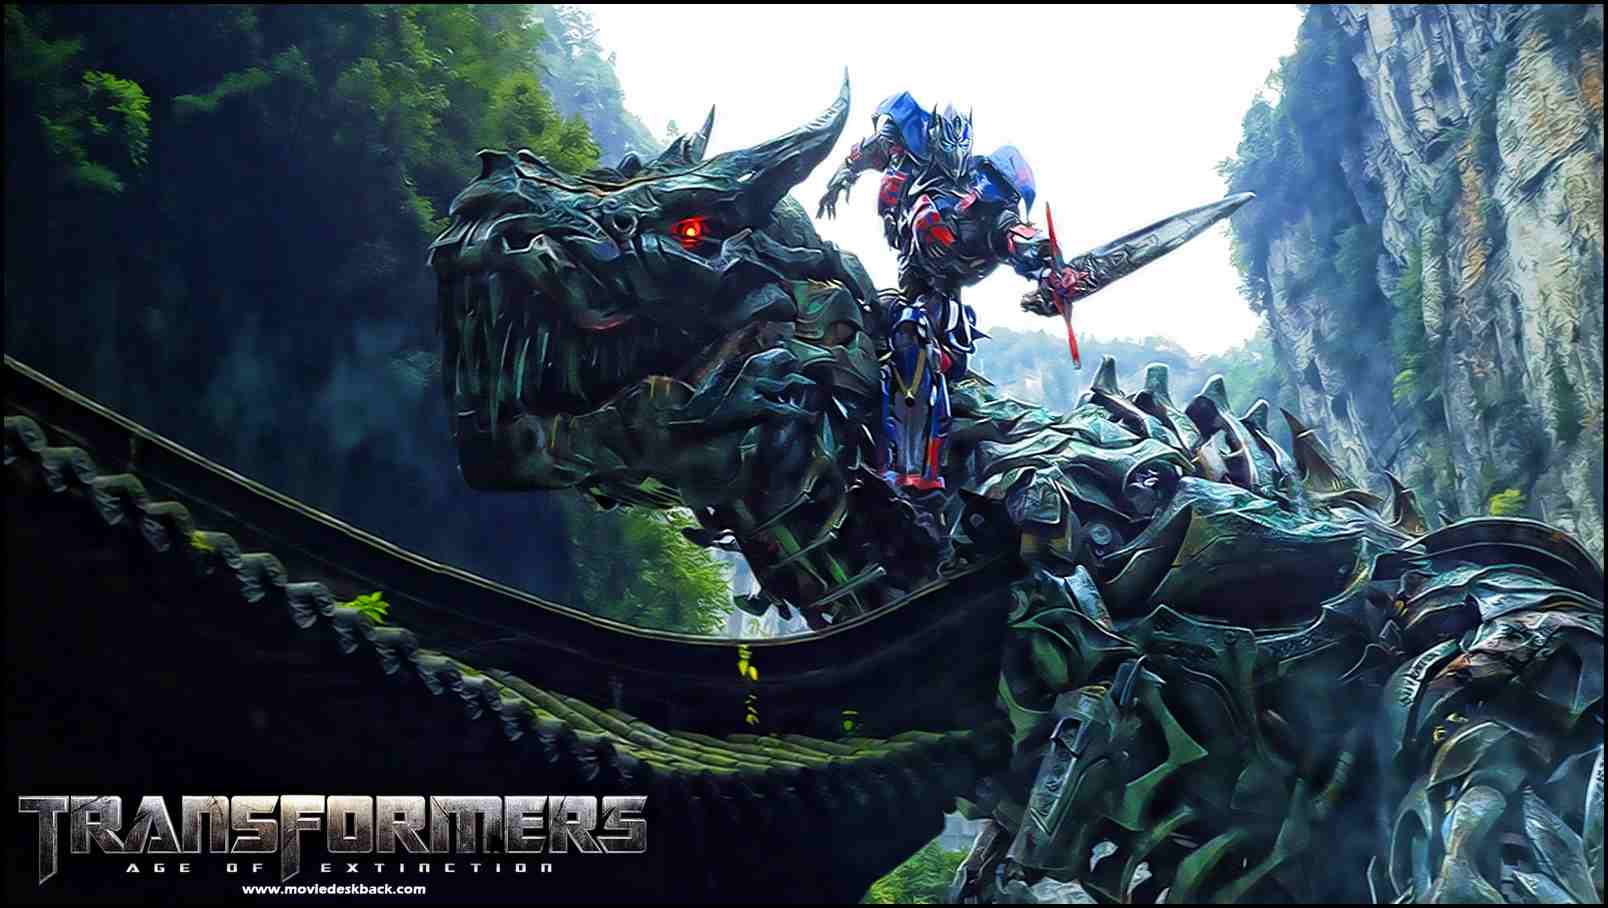 Transformers-4-Age-of-Extinction-wallpapers